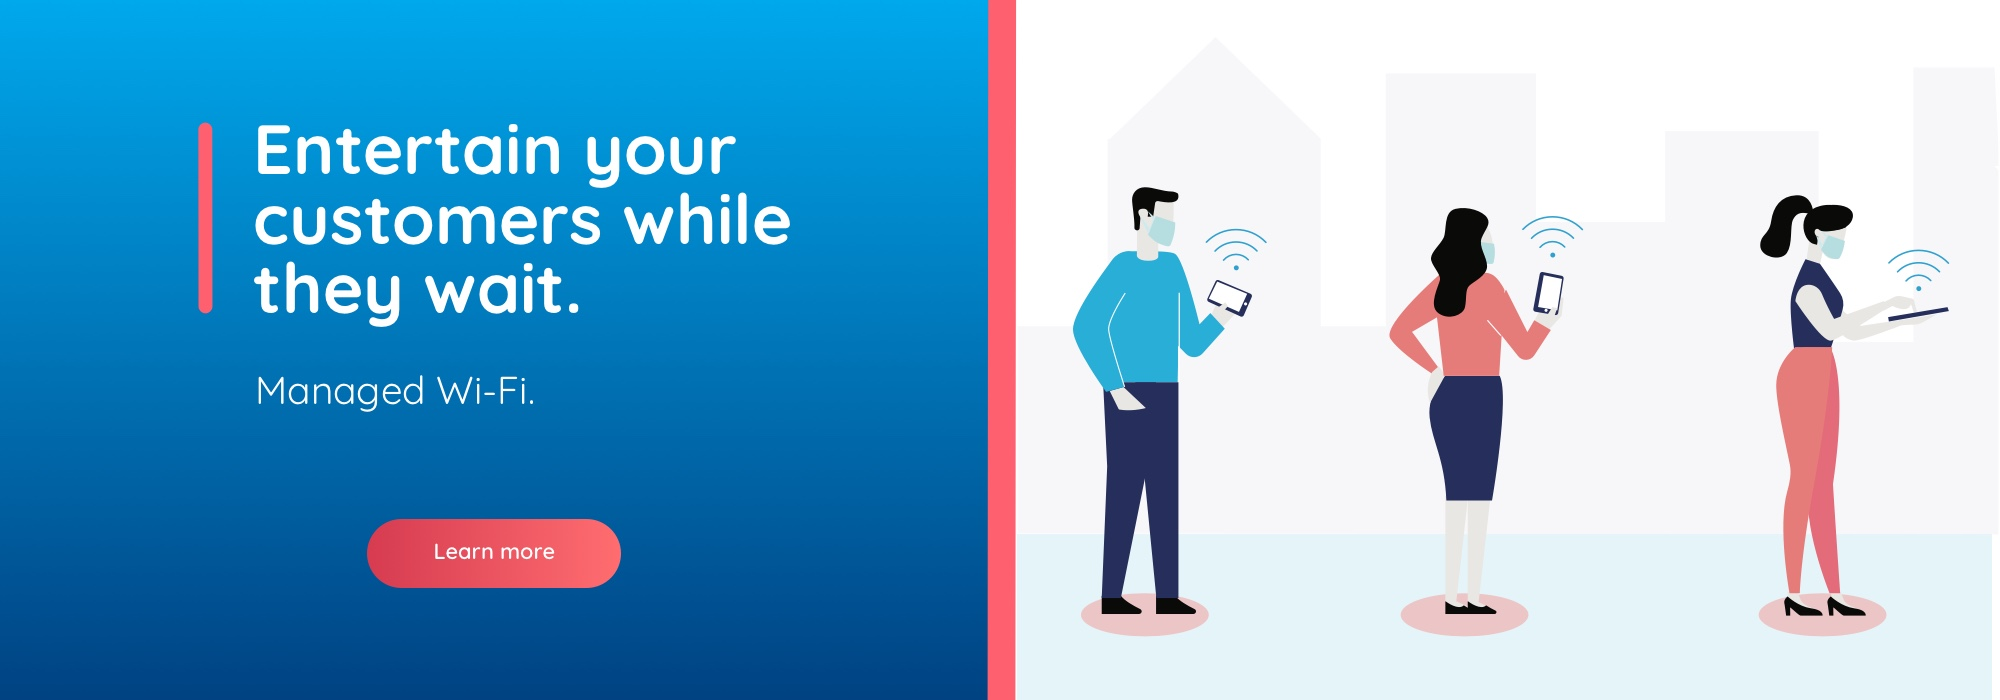 Entertain your customers while they wait. Managed Wi-Fi. Learn more